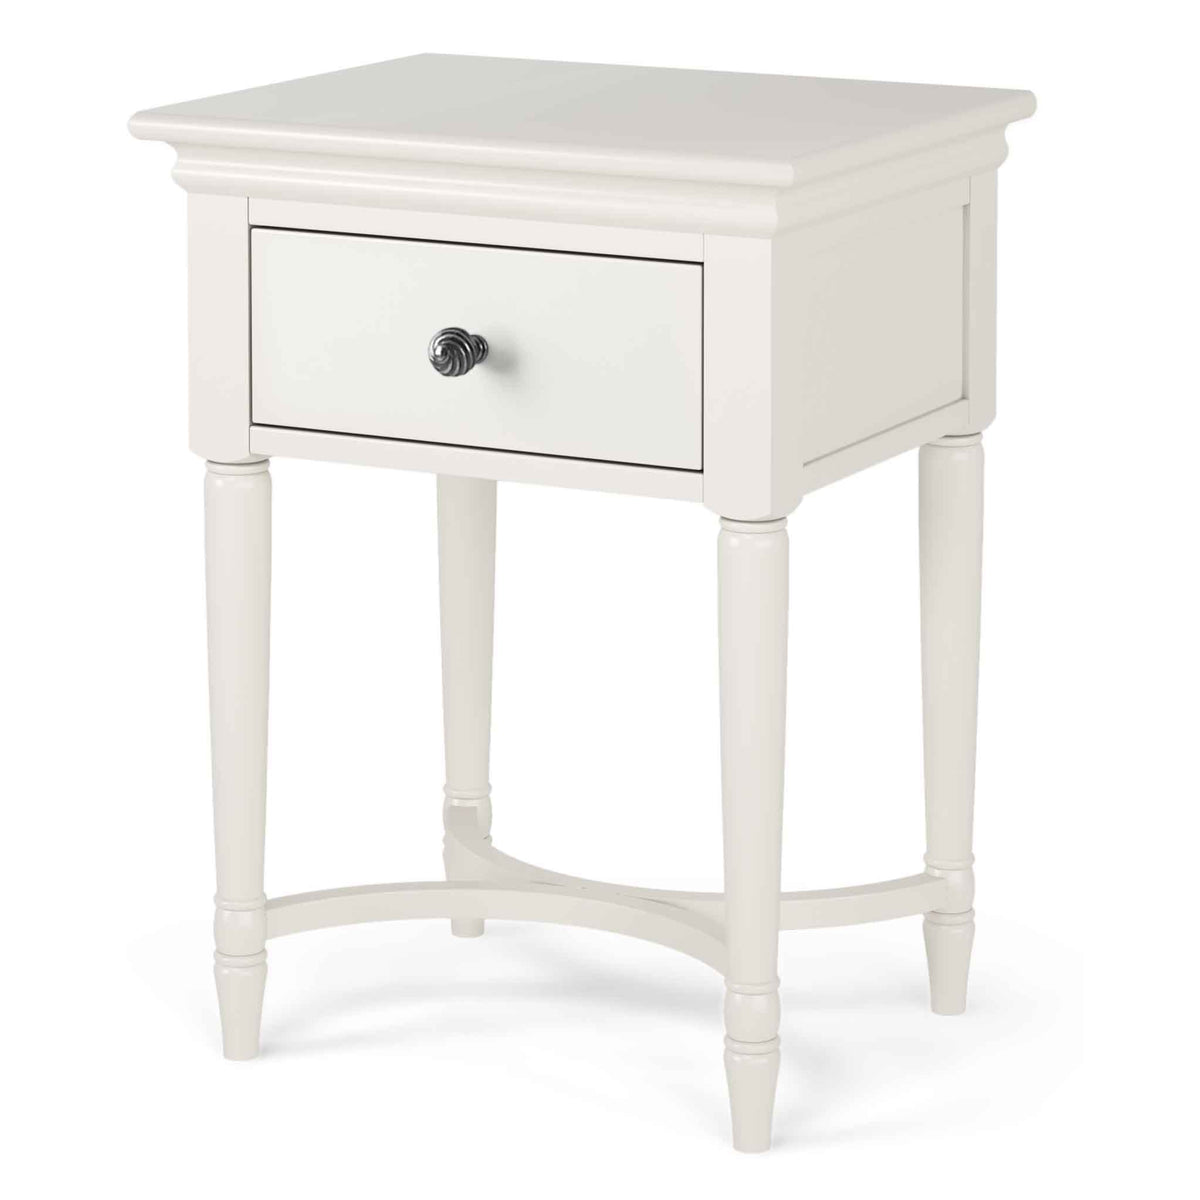 Melrose Cotton White Side Table with Drawer from Roseland Furniture